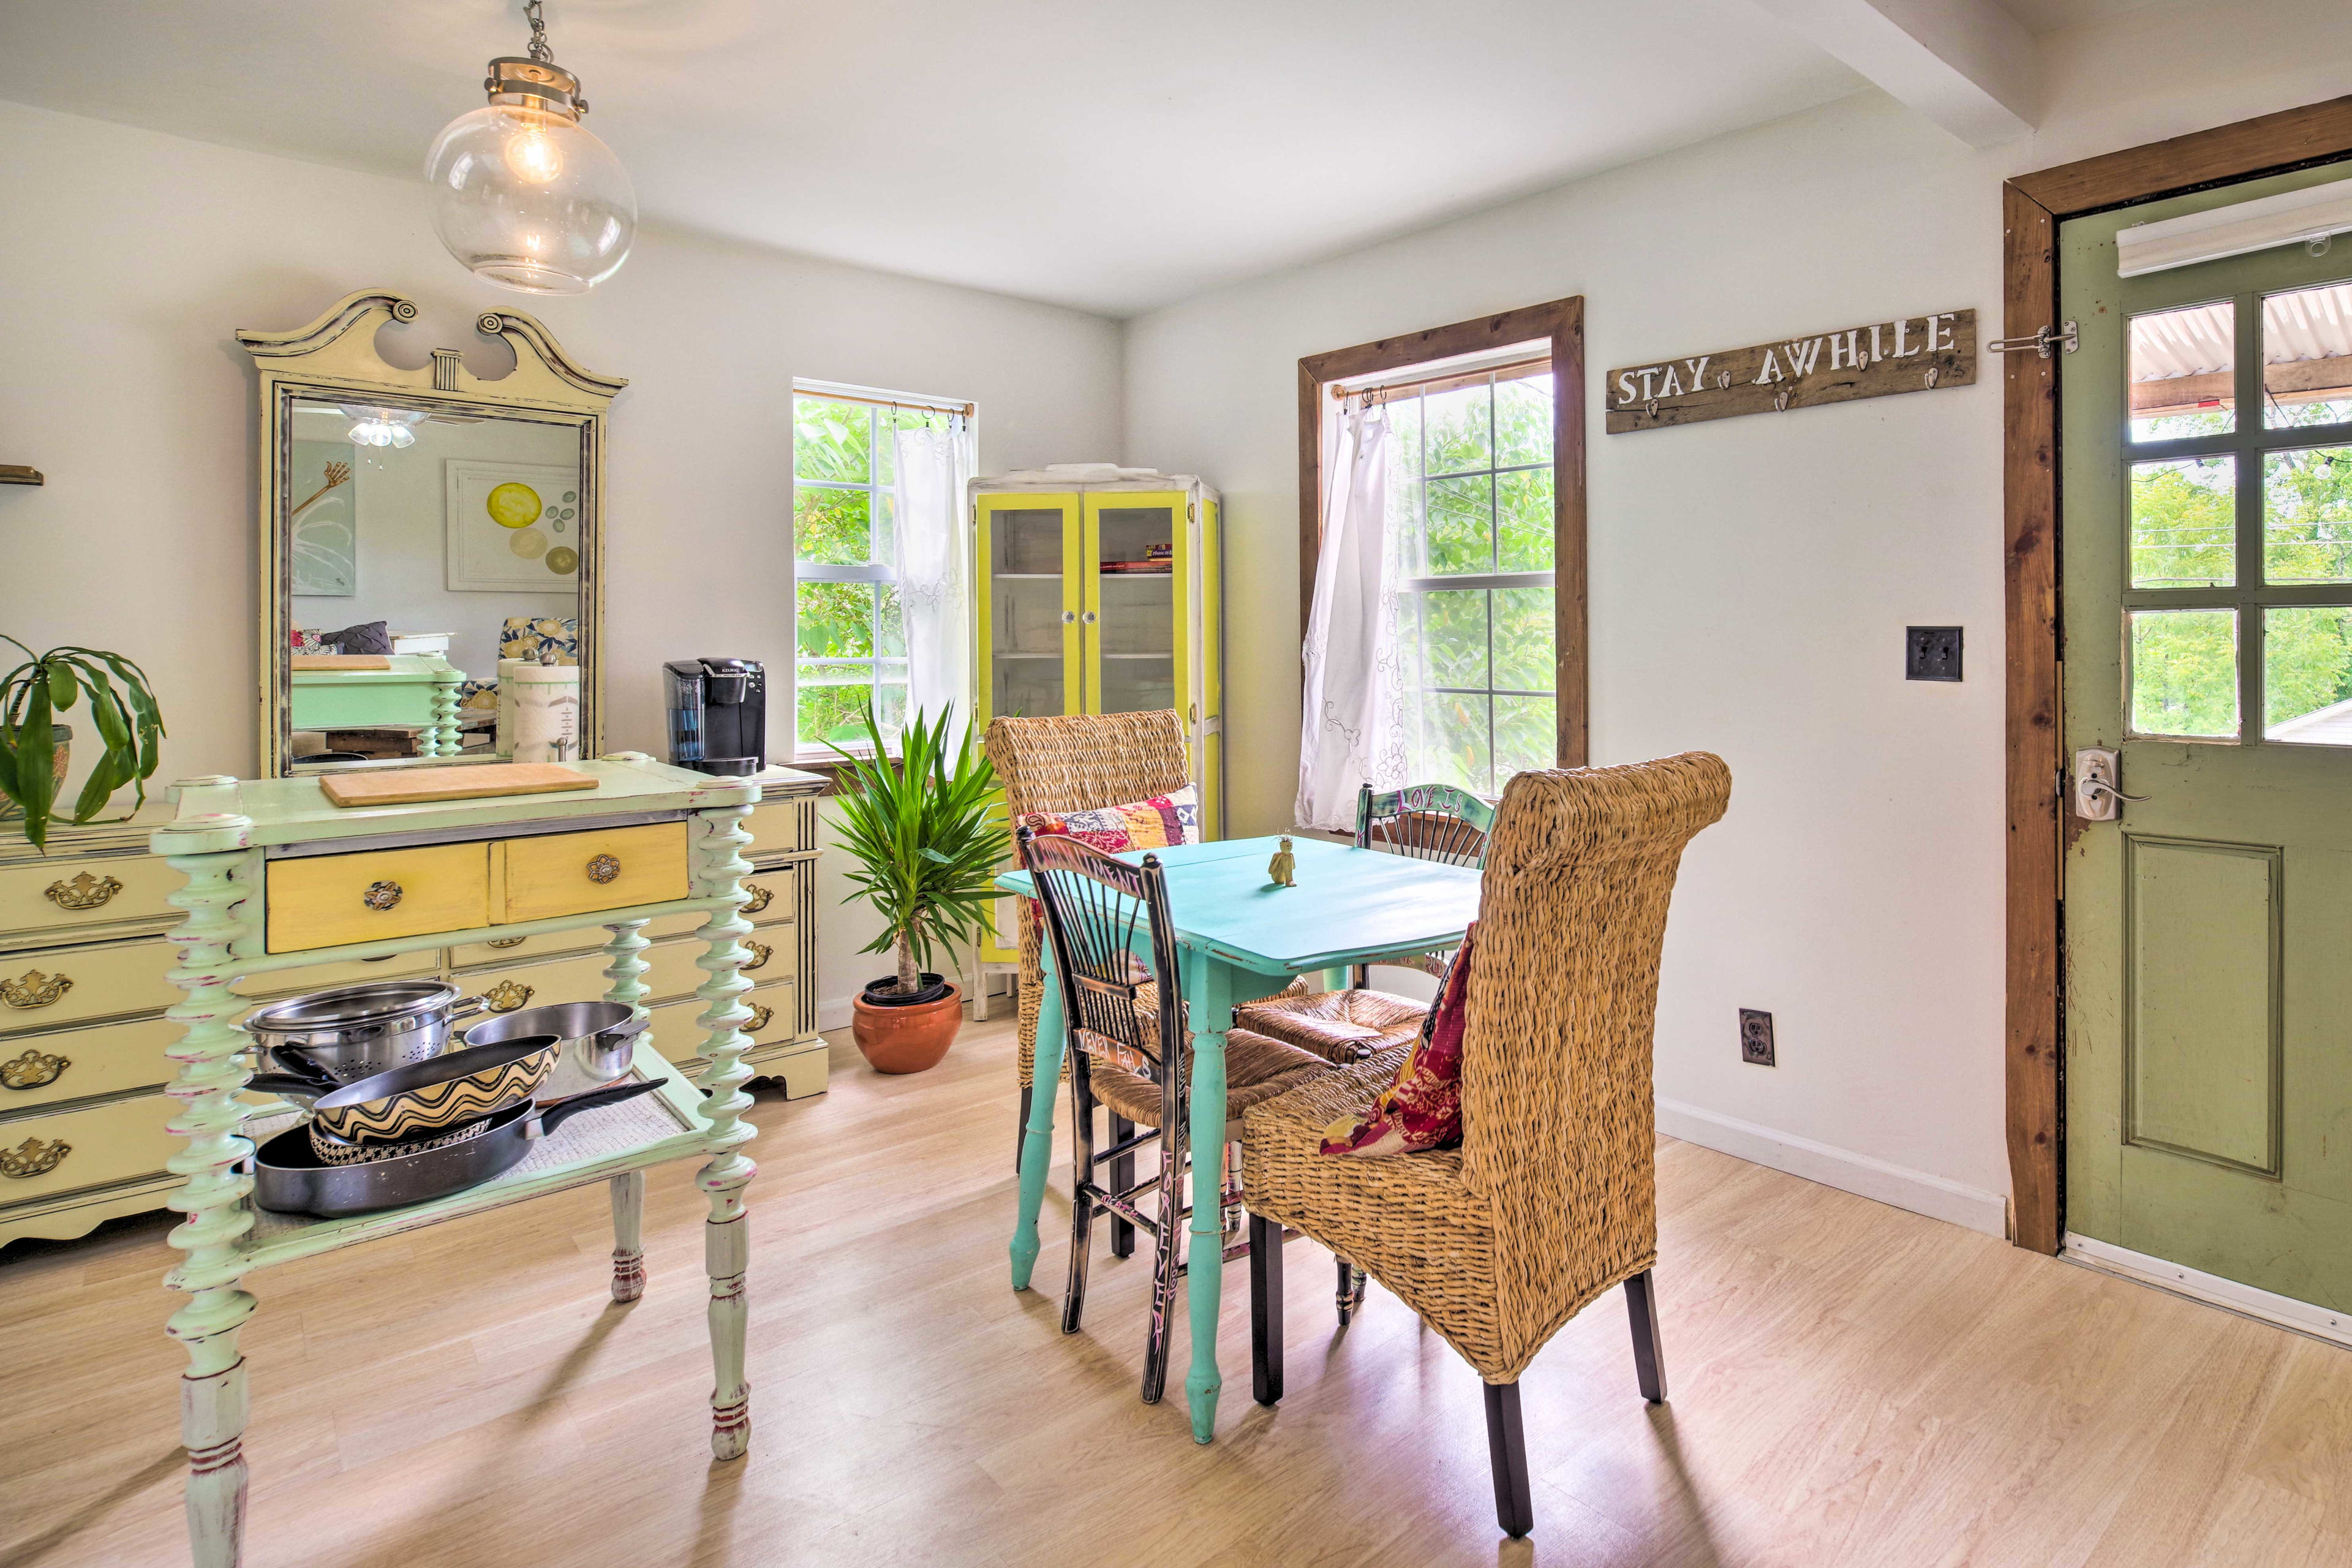 Dine together at the 4-person table.